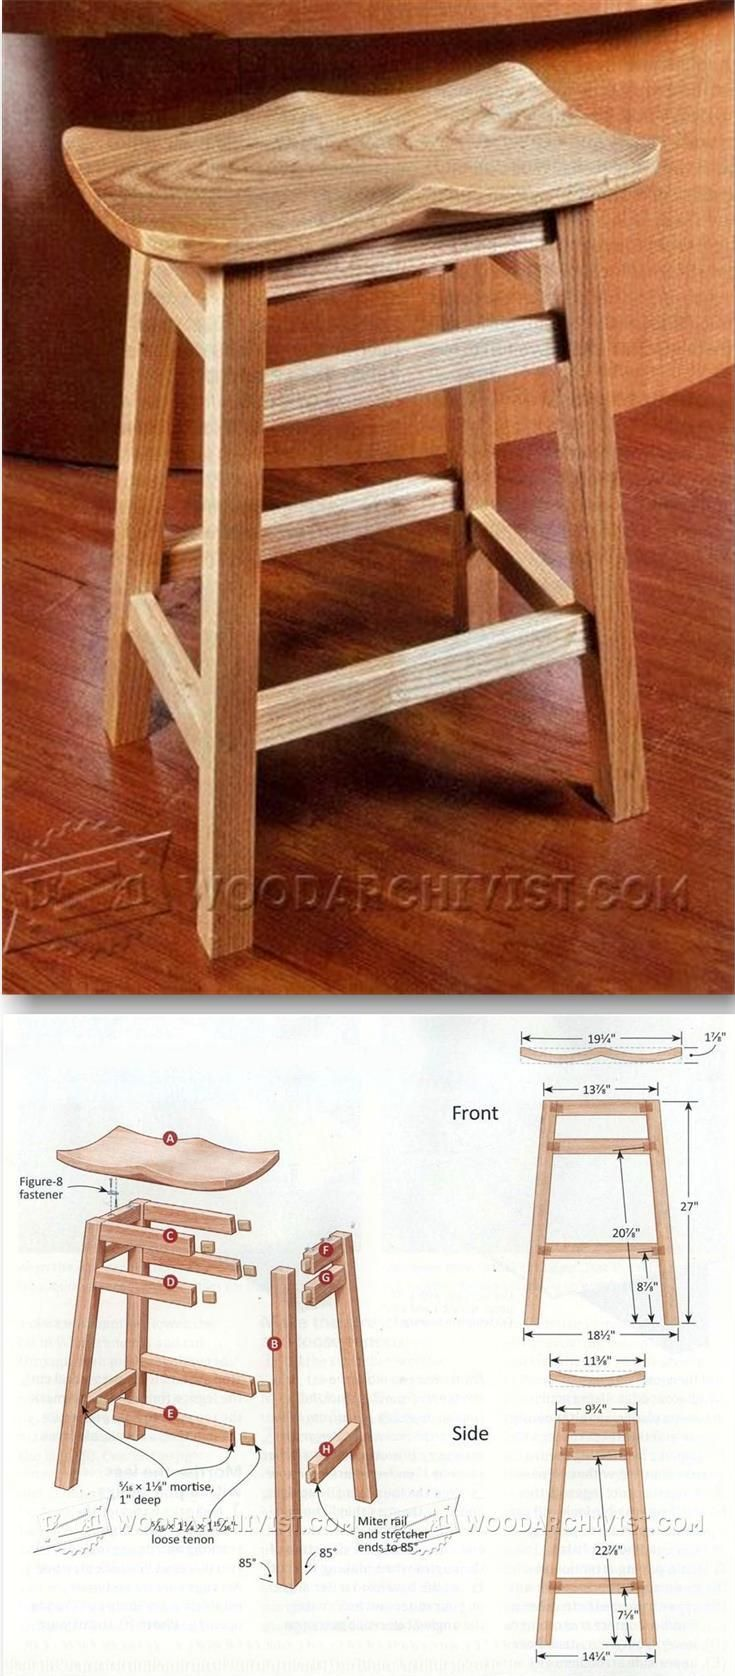 Kitchen stool plans furniture plans and projects woodarchivist